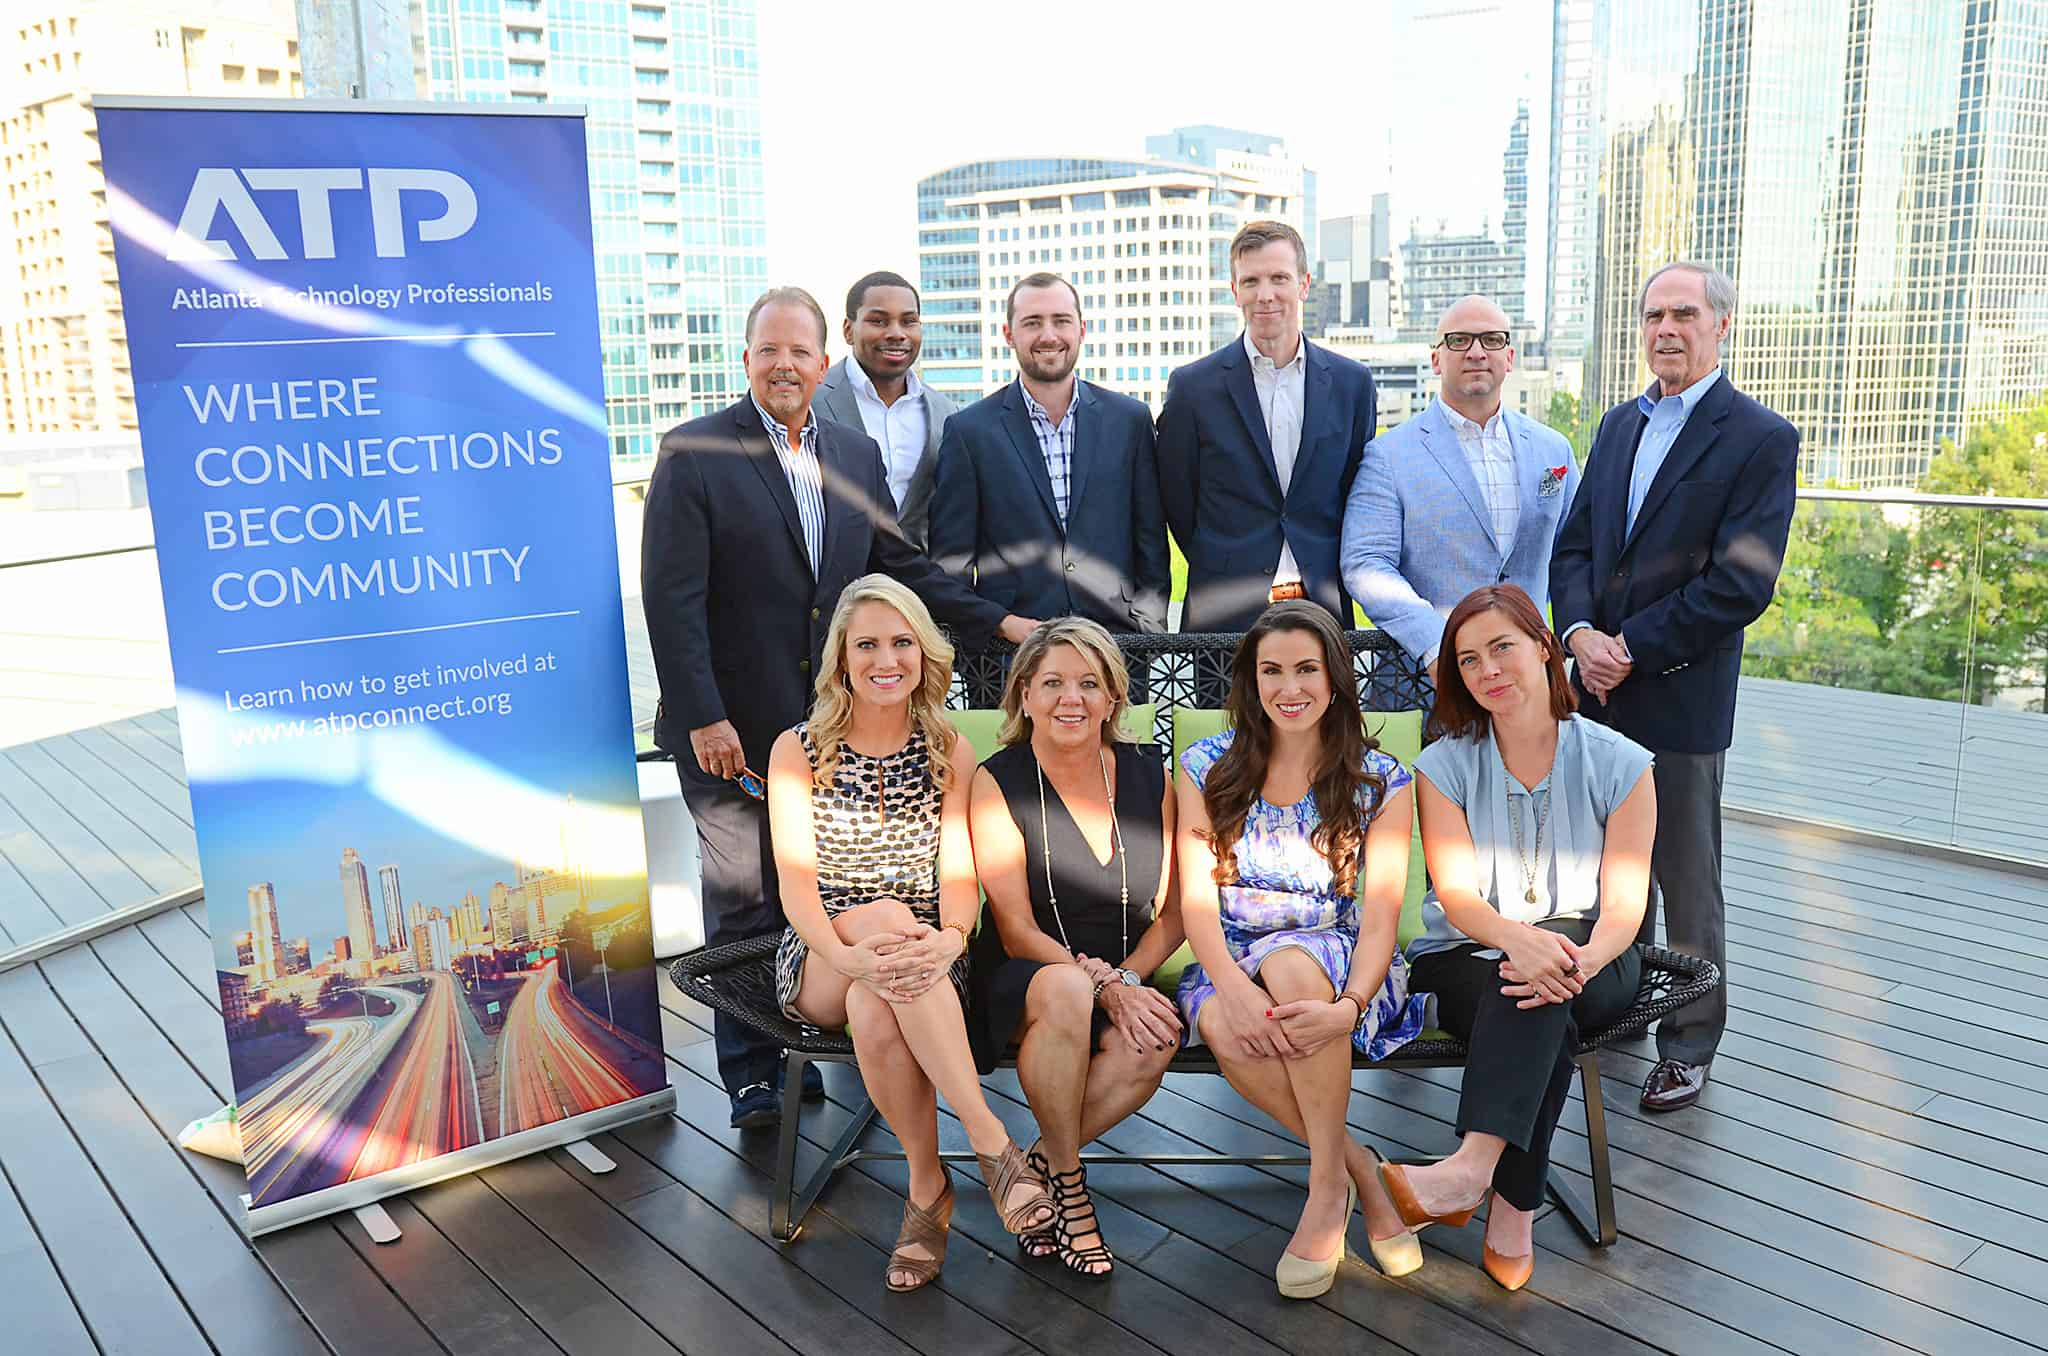 A photo of the board of directors at the ATP Social